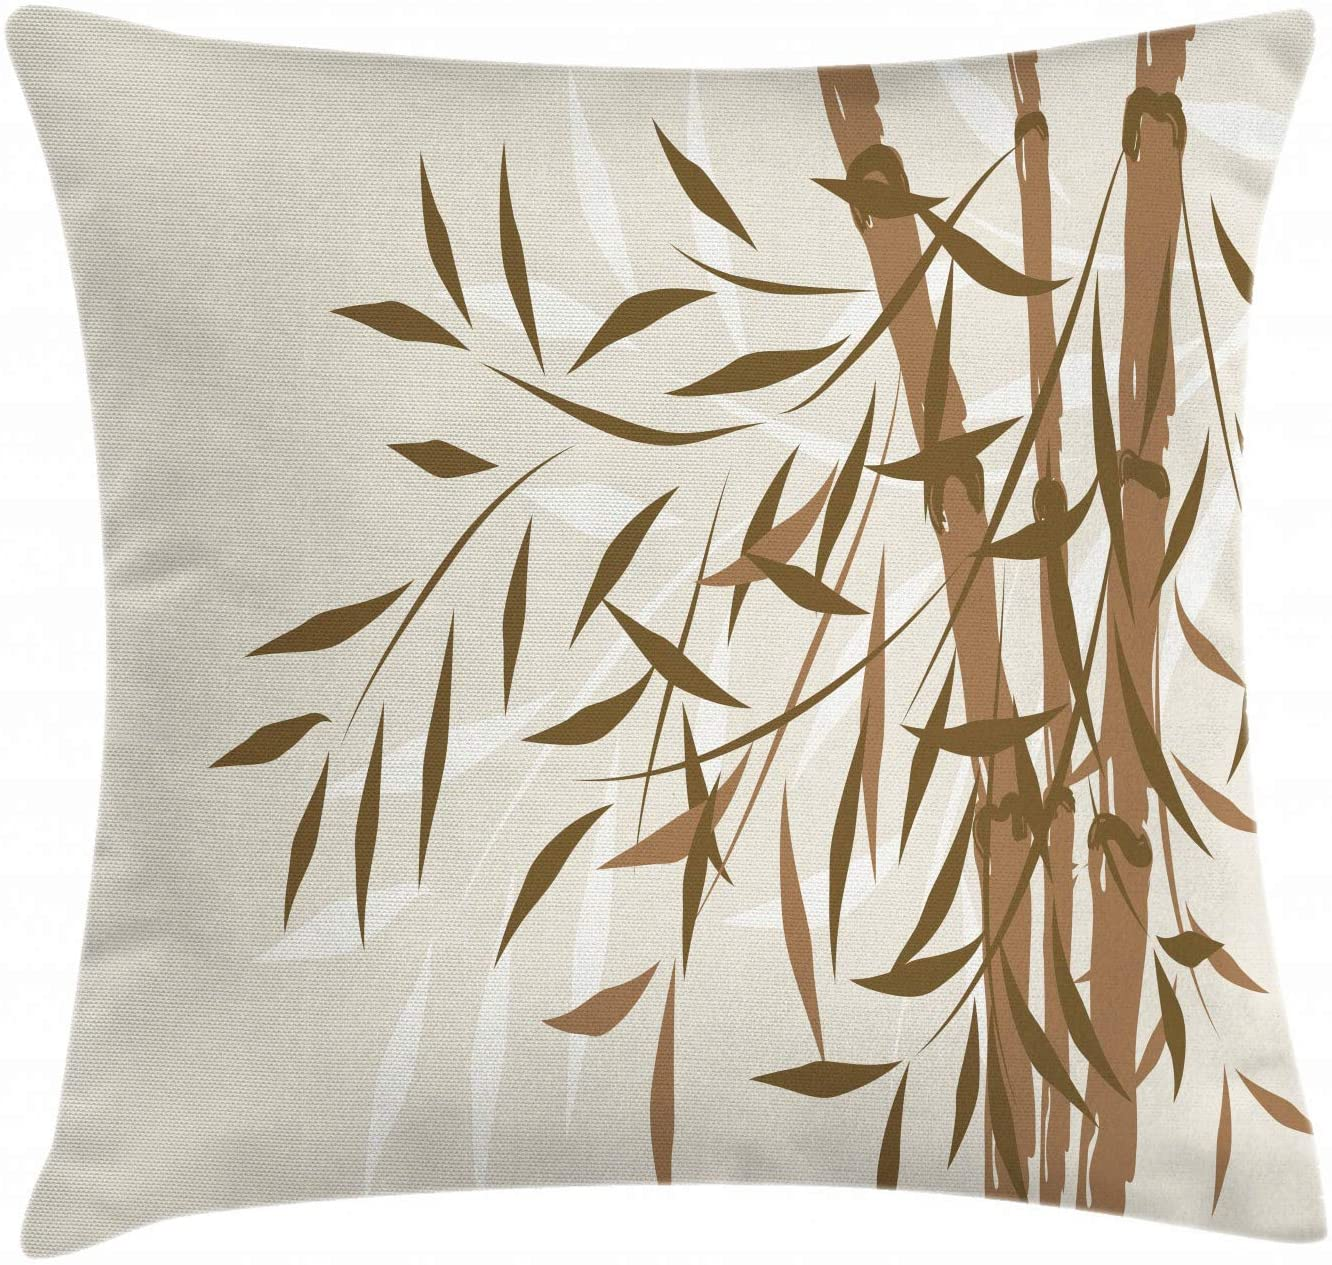 Lunarable Bamboo Throw Pillow Cushion Cover, Asian Tree Design Soft Colors Chinese Culture Inspired Artwork Eastern Pattern, Decorative Square Accent Pillow Case, 20